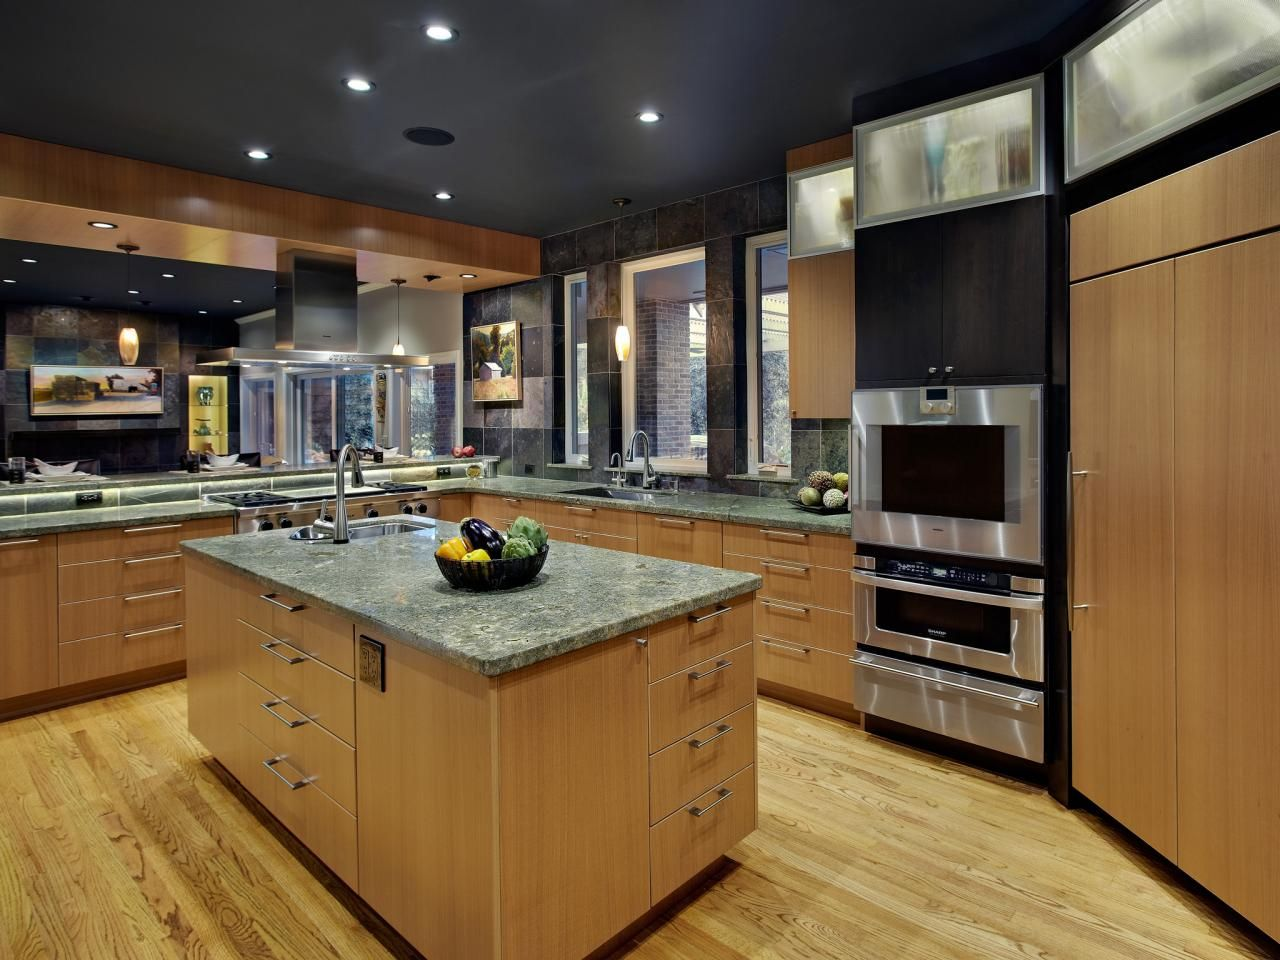 Blonde Kitchen Cabinets Chelsea Nook F31 In Perfect Home Decor Ideas With